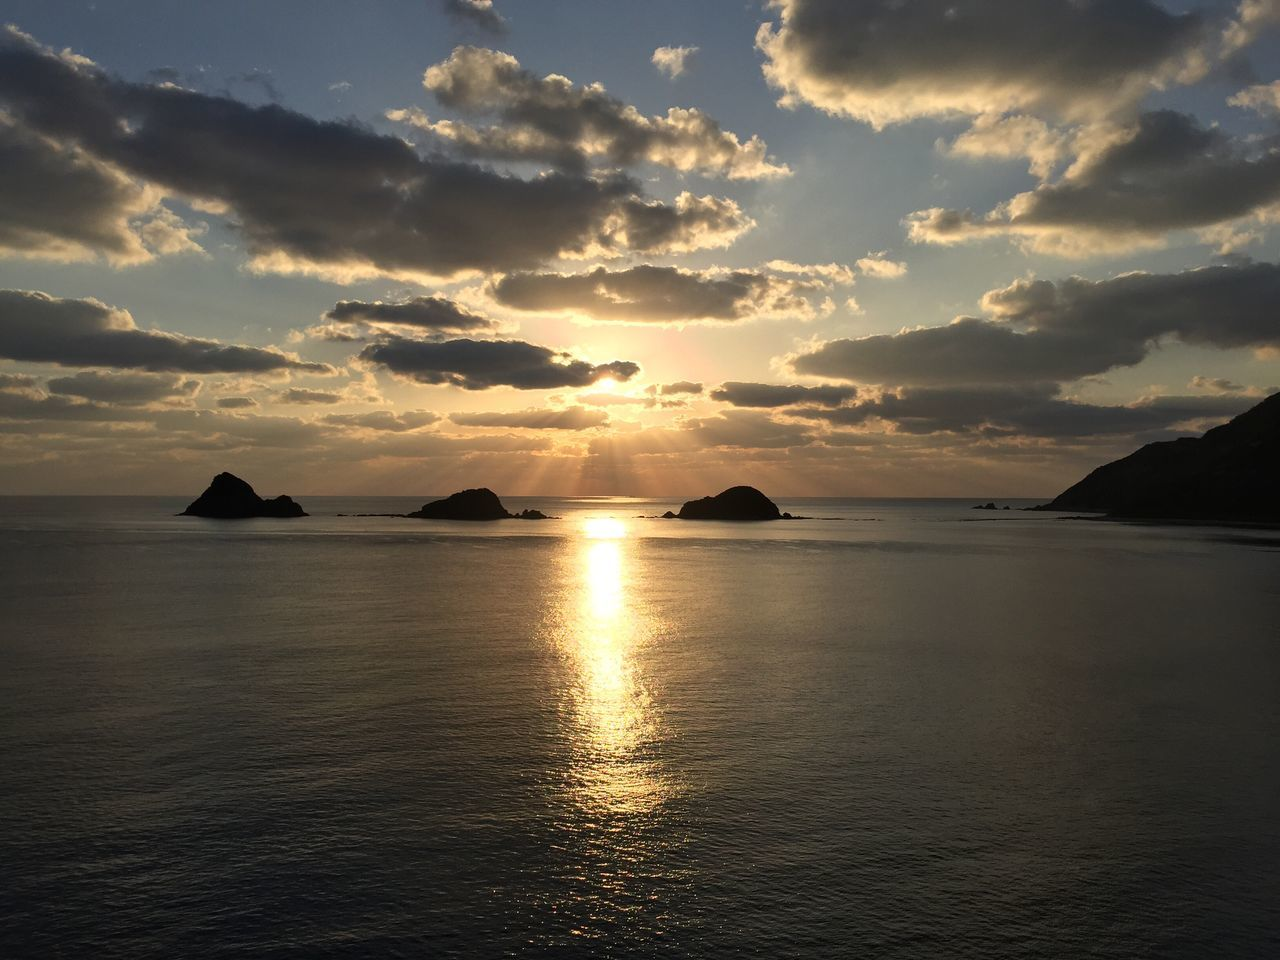 Sea Sunset Tranquil Scene Water Beauty In Nature Tranquility Scenics Reflection Nature Sky Idyllic Cloud - Sky Horizon Over Water No People Sunlight Outdoors Beach Sun Day Smallisland Islands Landscape Kagoshima Amami Island